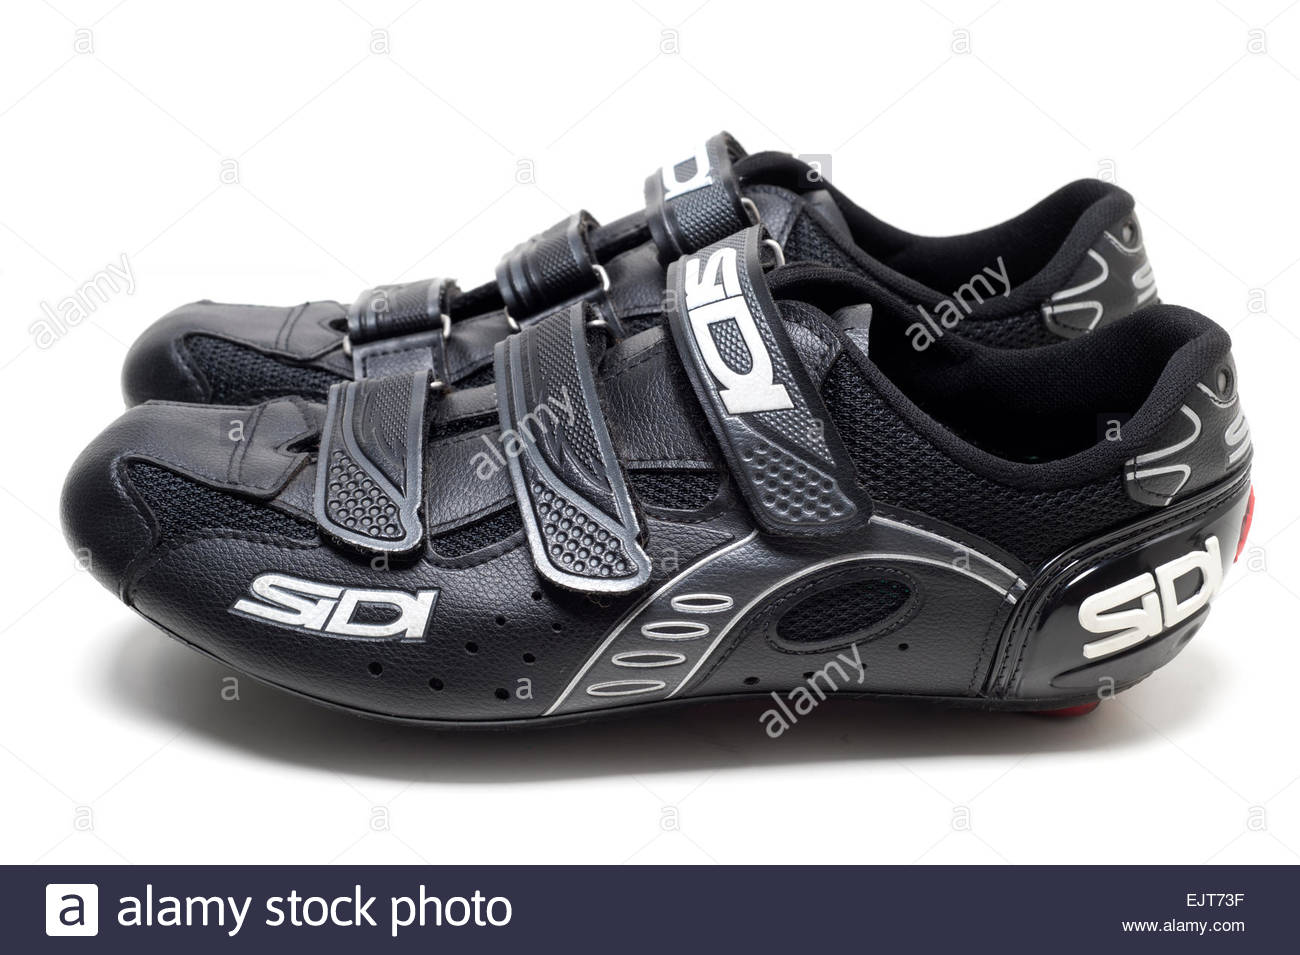 Mens Sidi Road Biking Cycling Shoes Black on a white background velcro straps made in Italy Racing - Stock Image